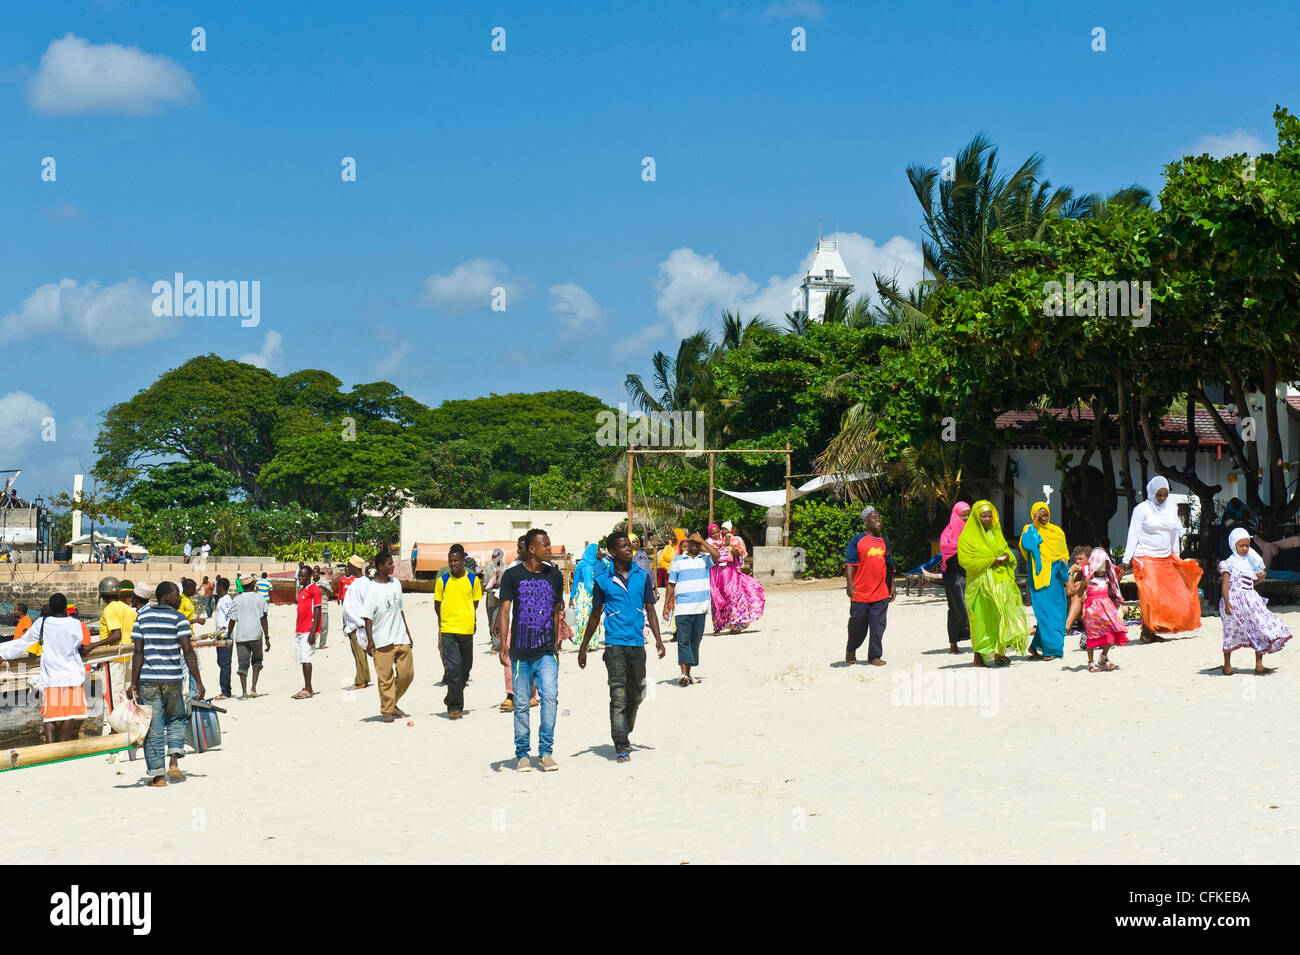 People walking along the beach in Stone Town Zanzibar Tanzania - Stock Image